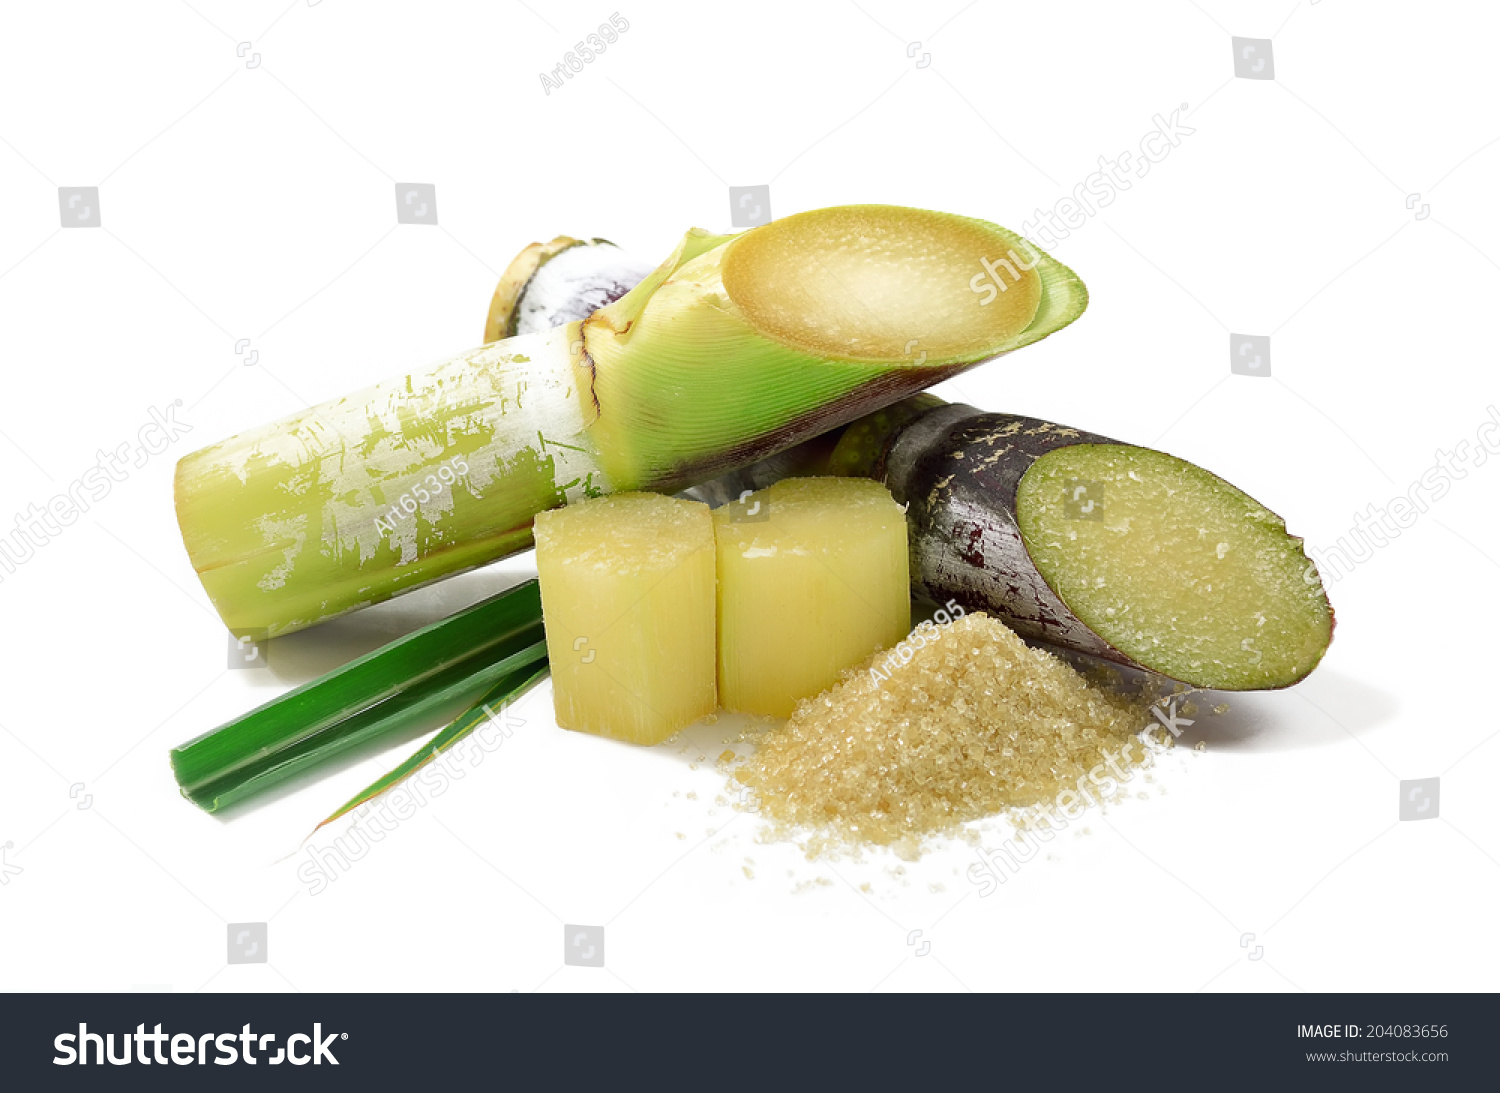 Sugar cane isolated on white background #204083656